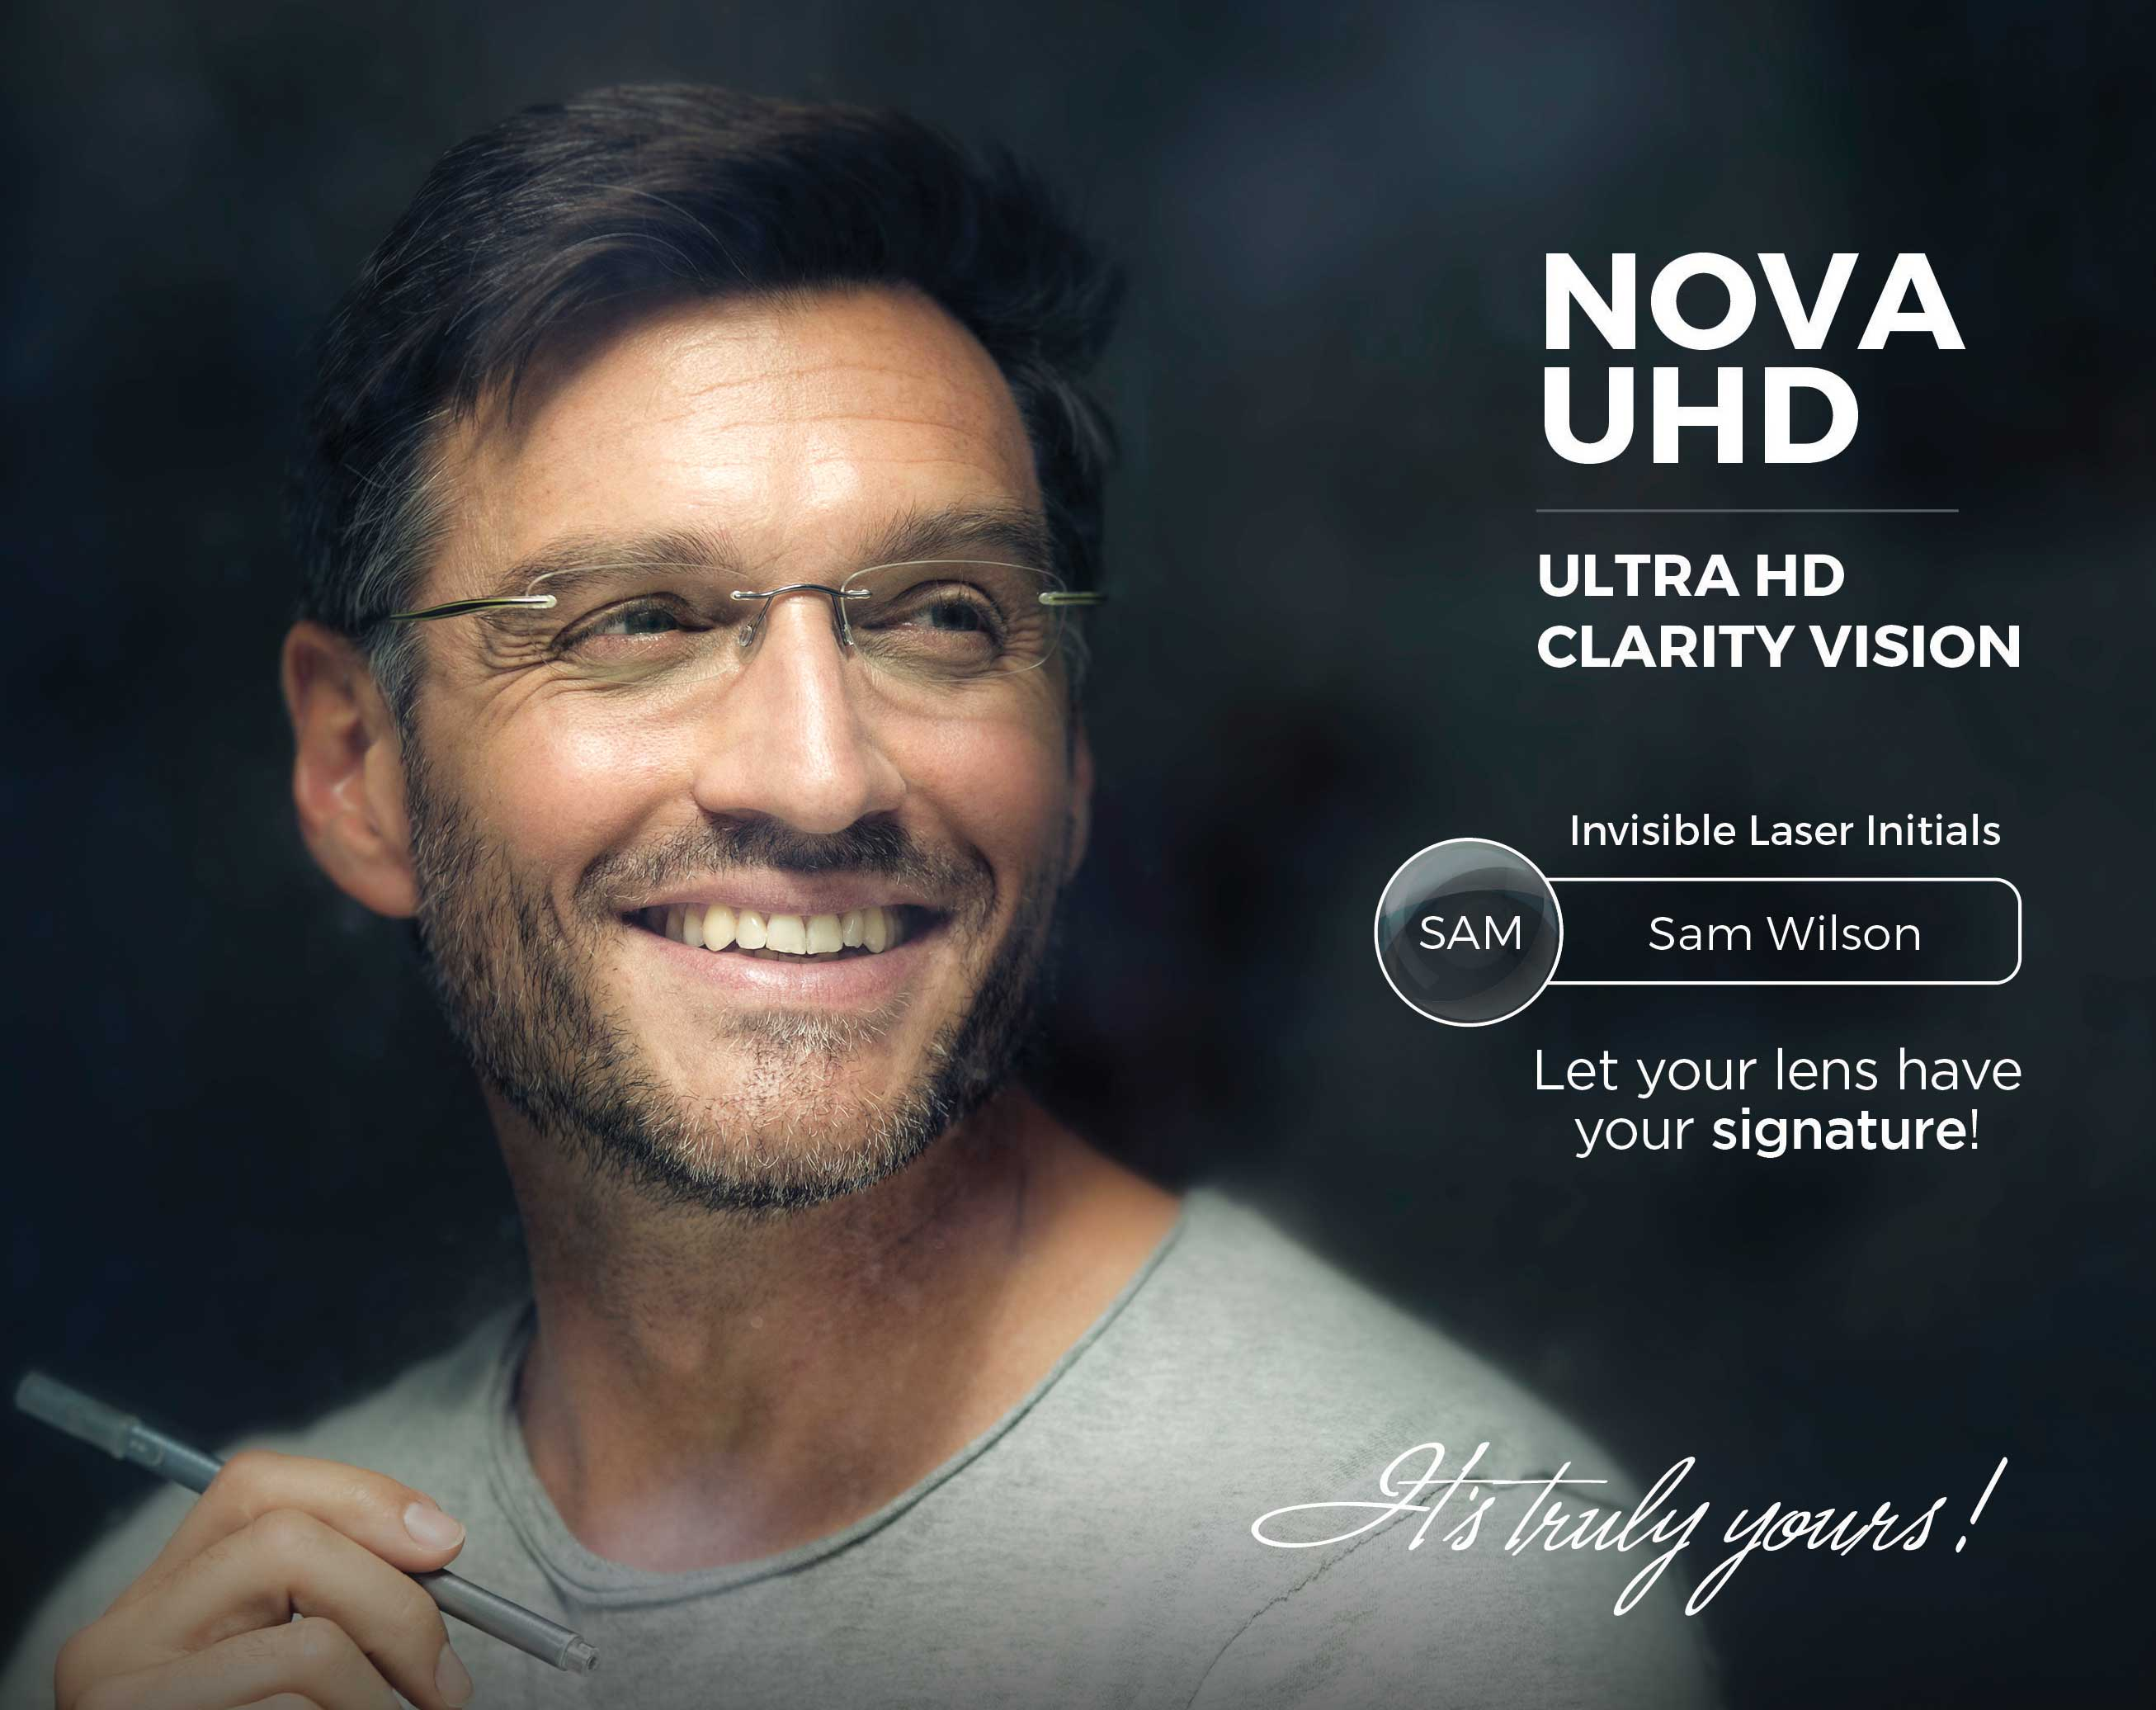 Nova UHD – Innovative Progressive Lens